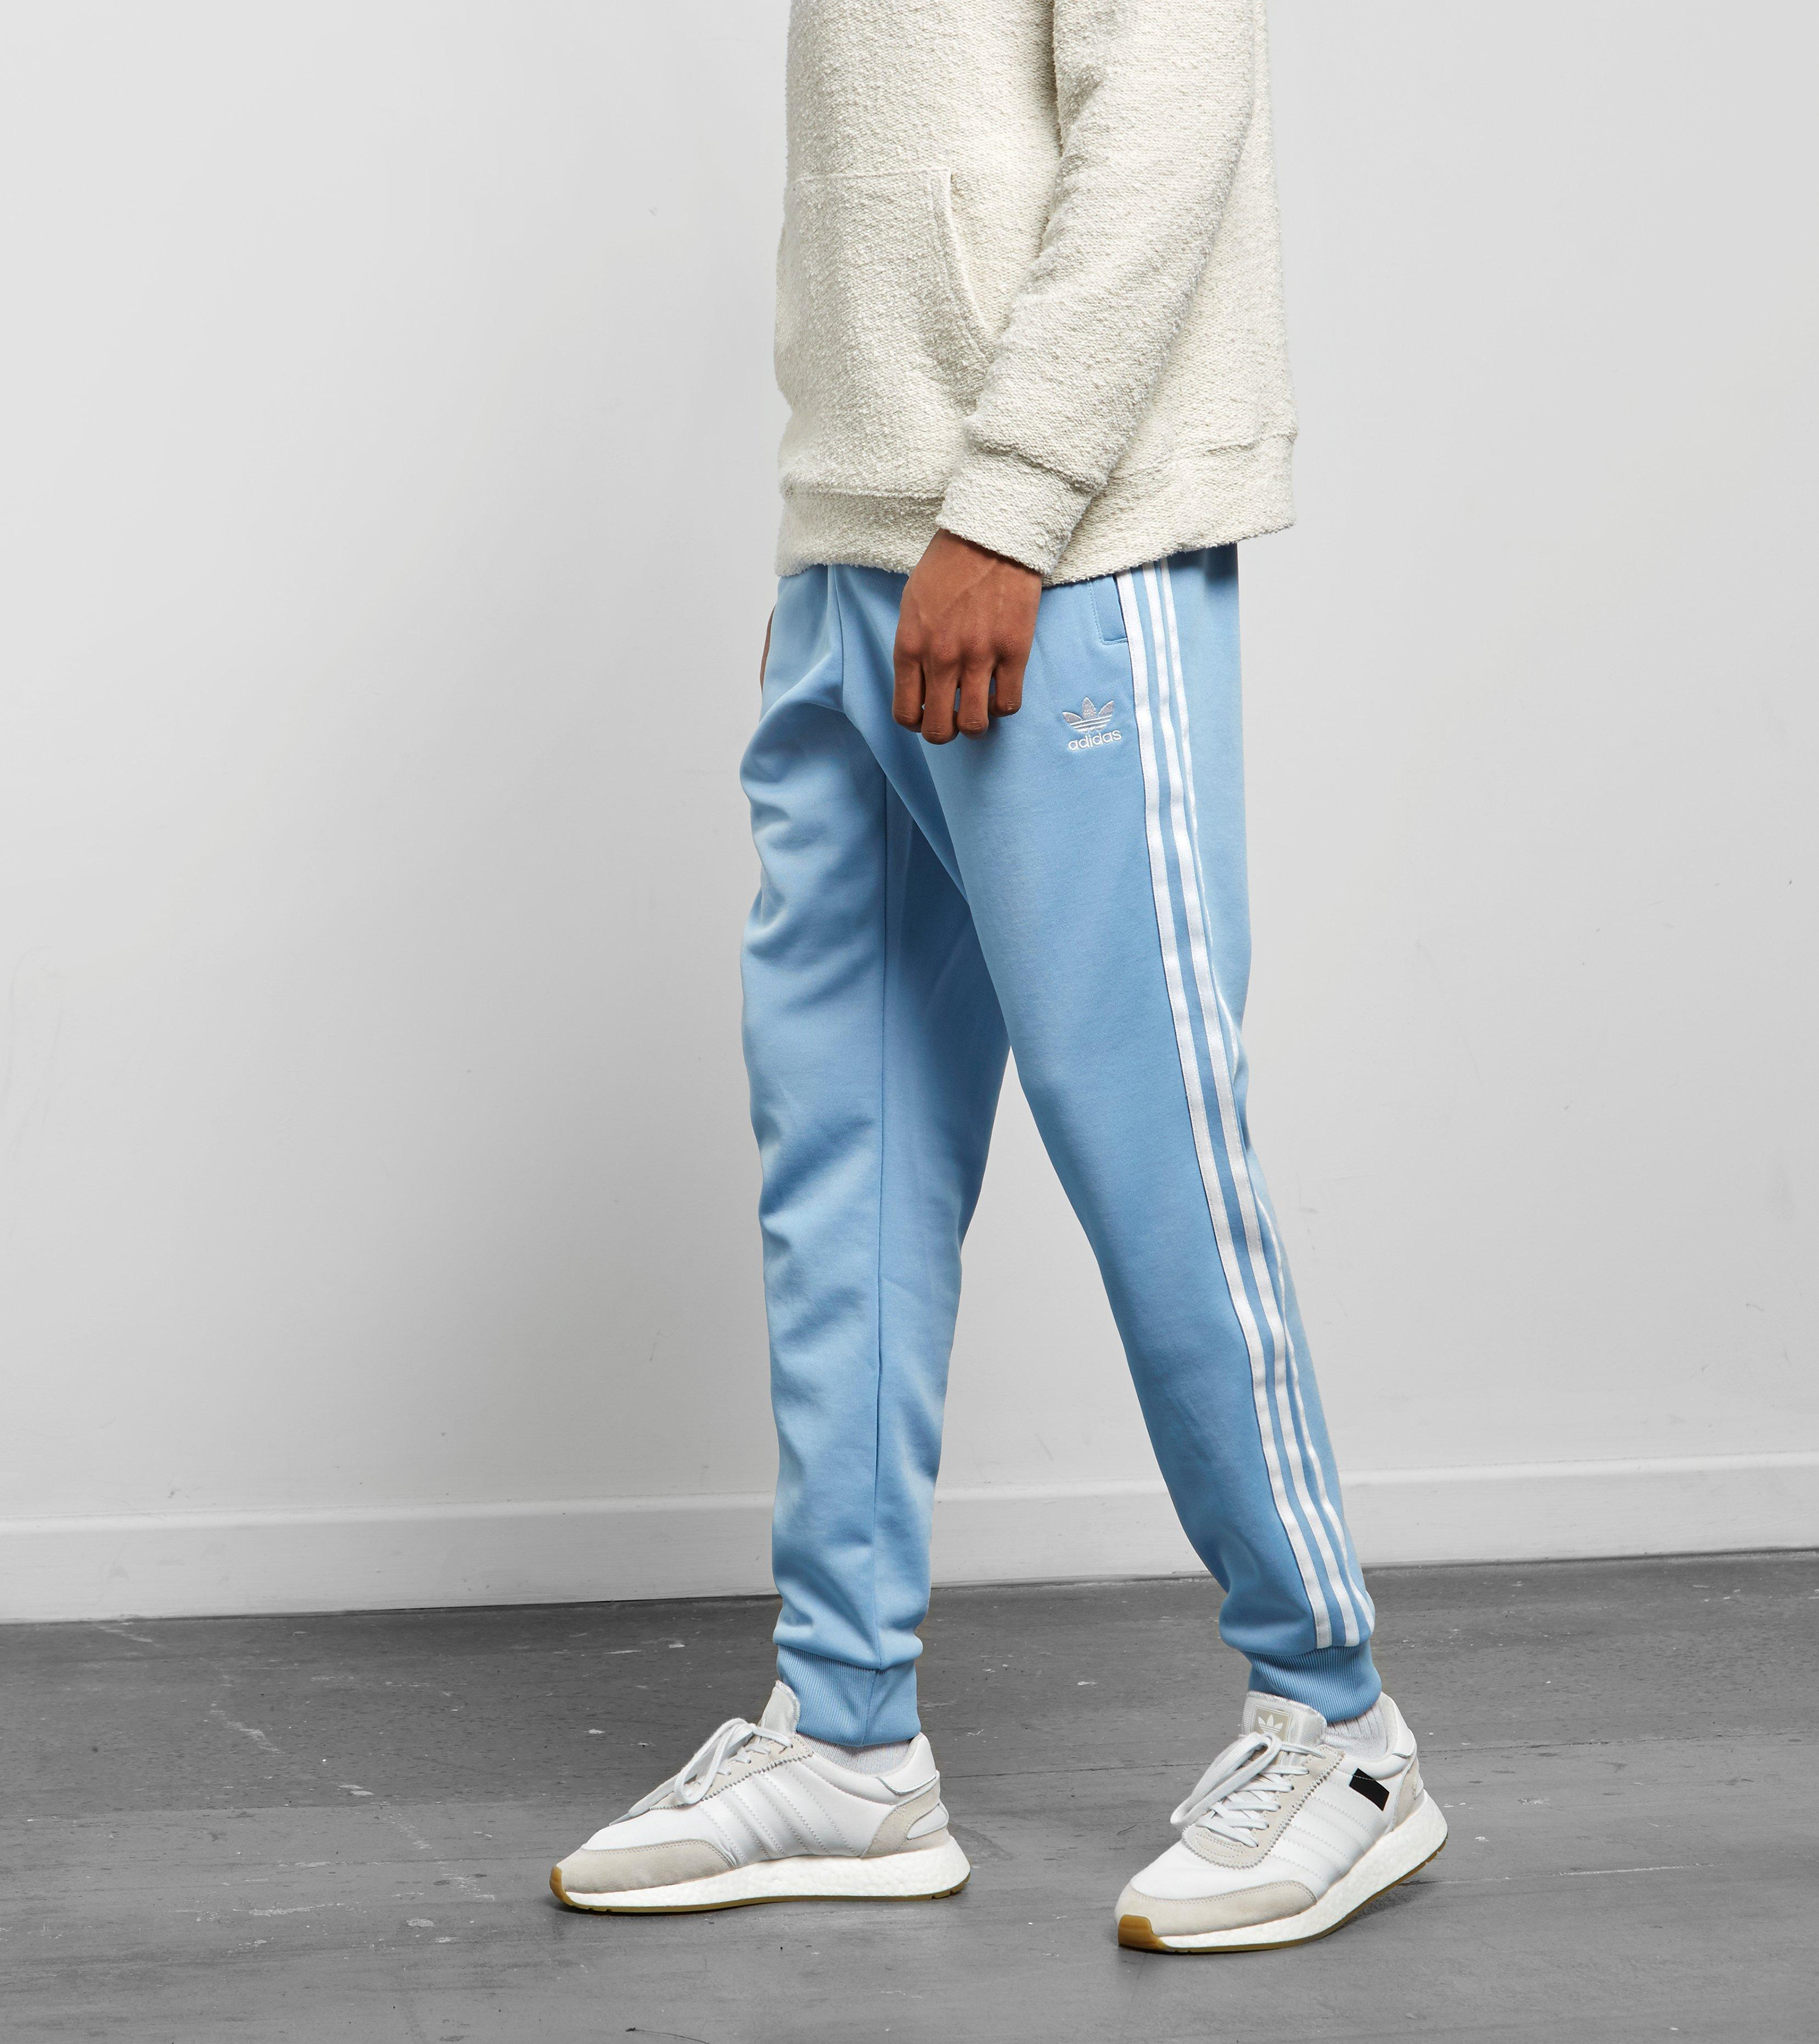 5b114438 adidas Originals Superstar Cuffed Track Pants in Blue for Men - Lyst